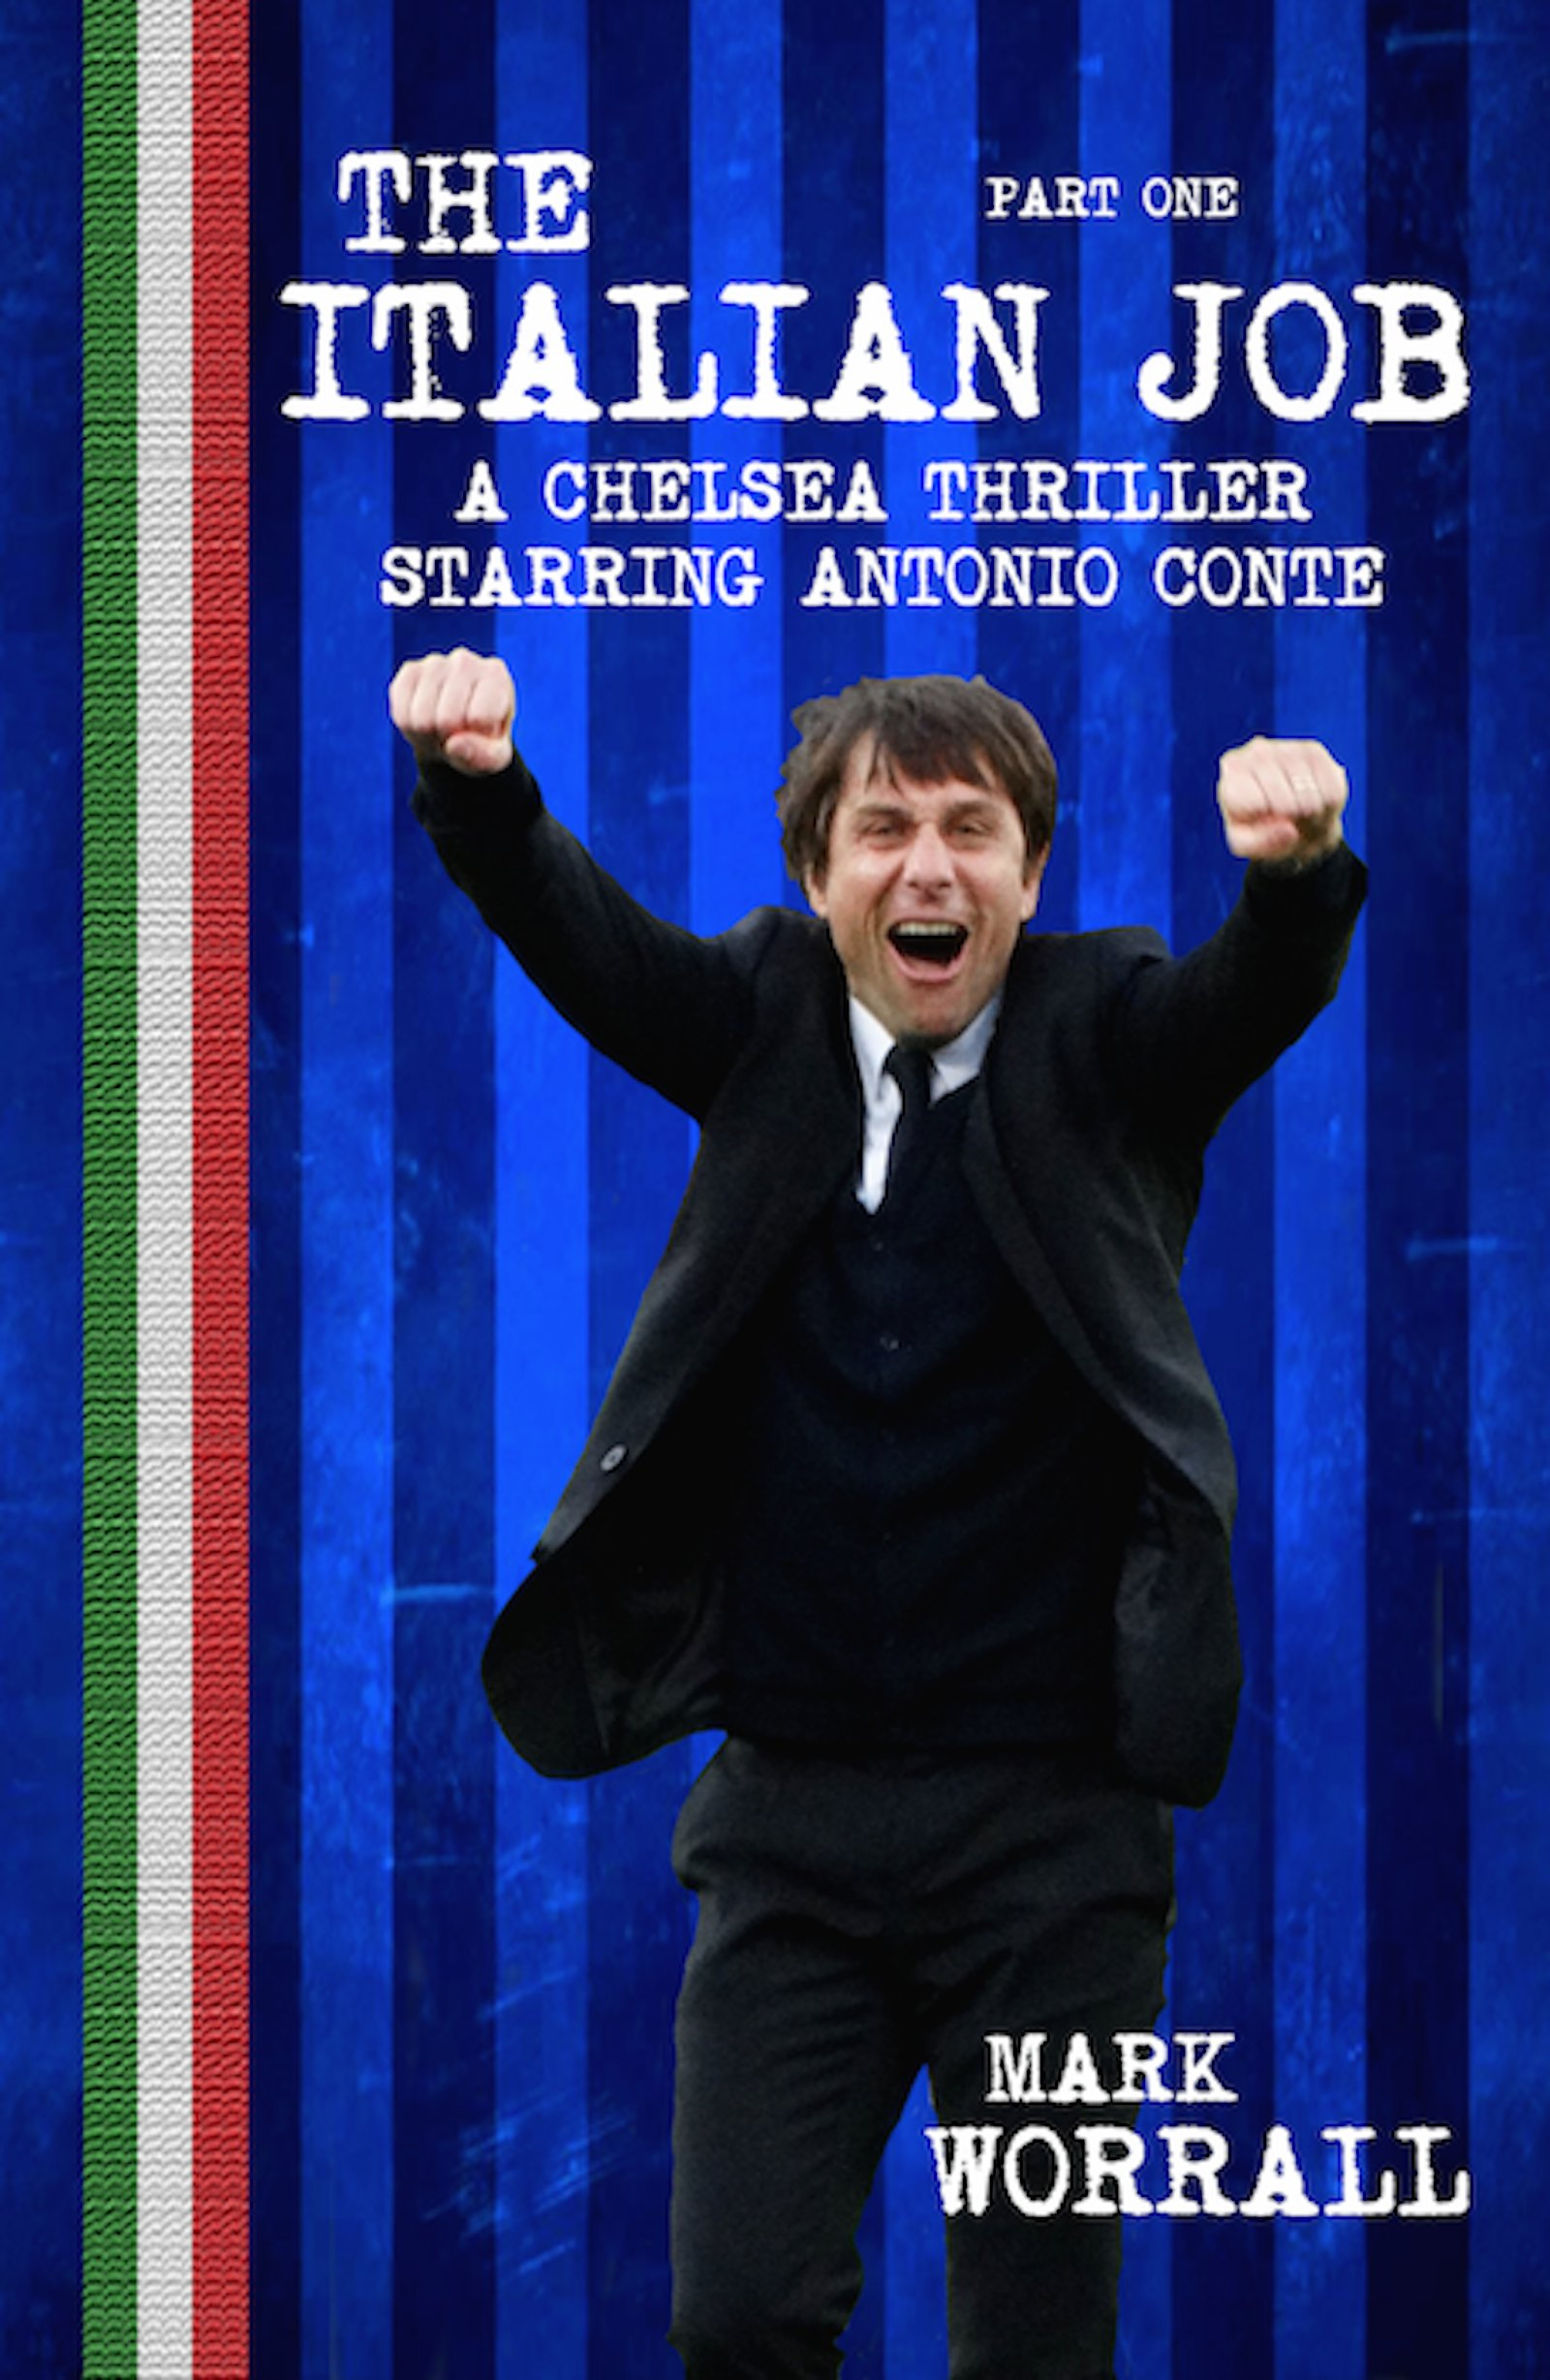 Image OfThe Italian Job: A Chelsea Thriller Starring Antonio Conte: Part One